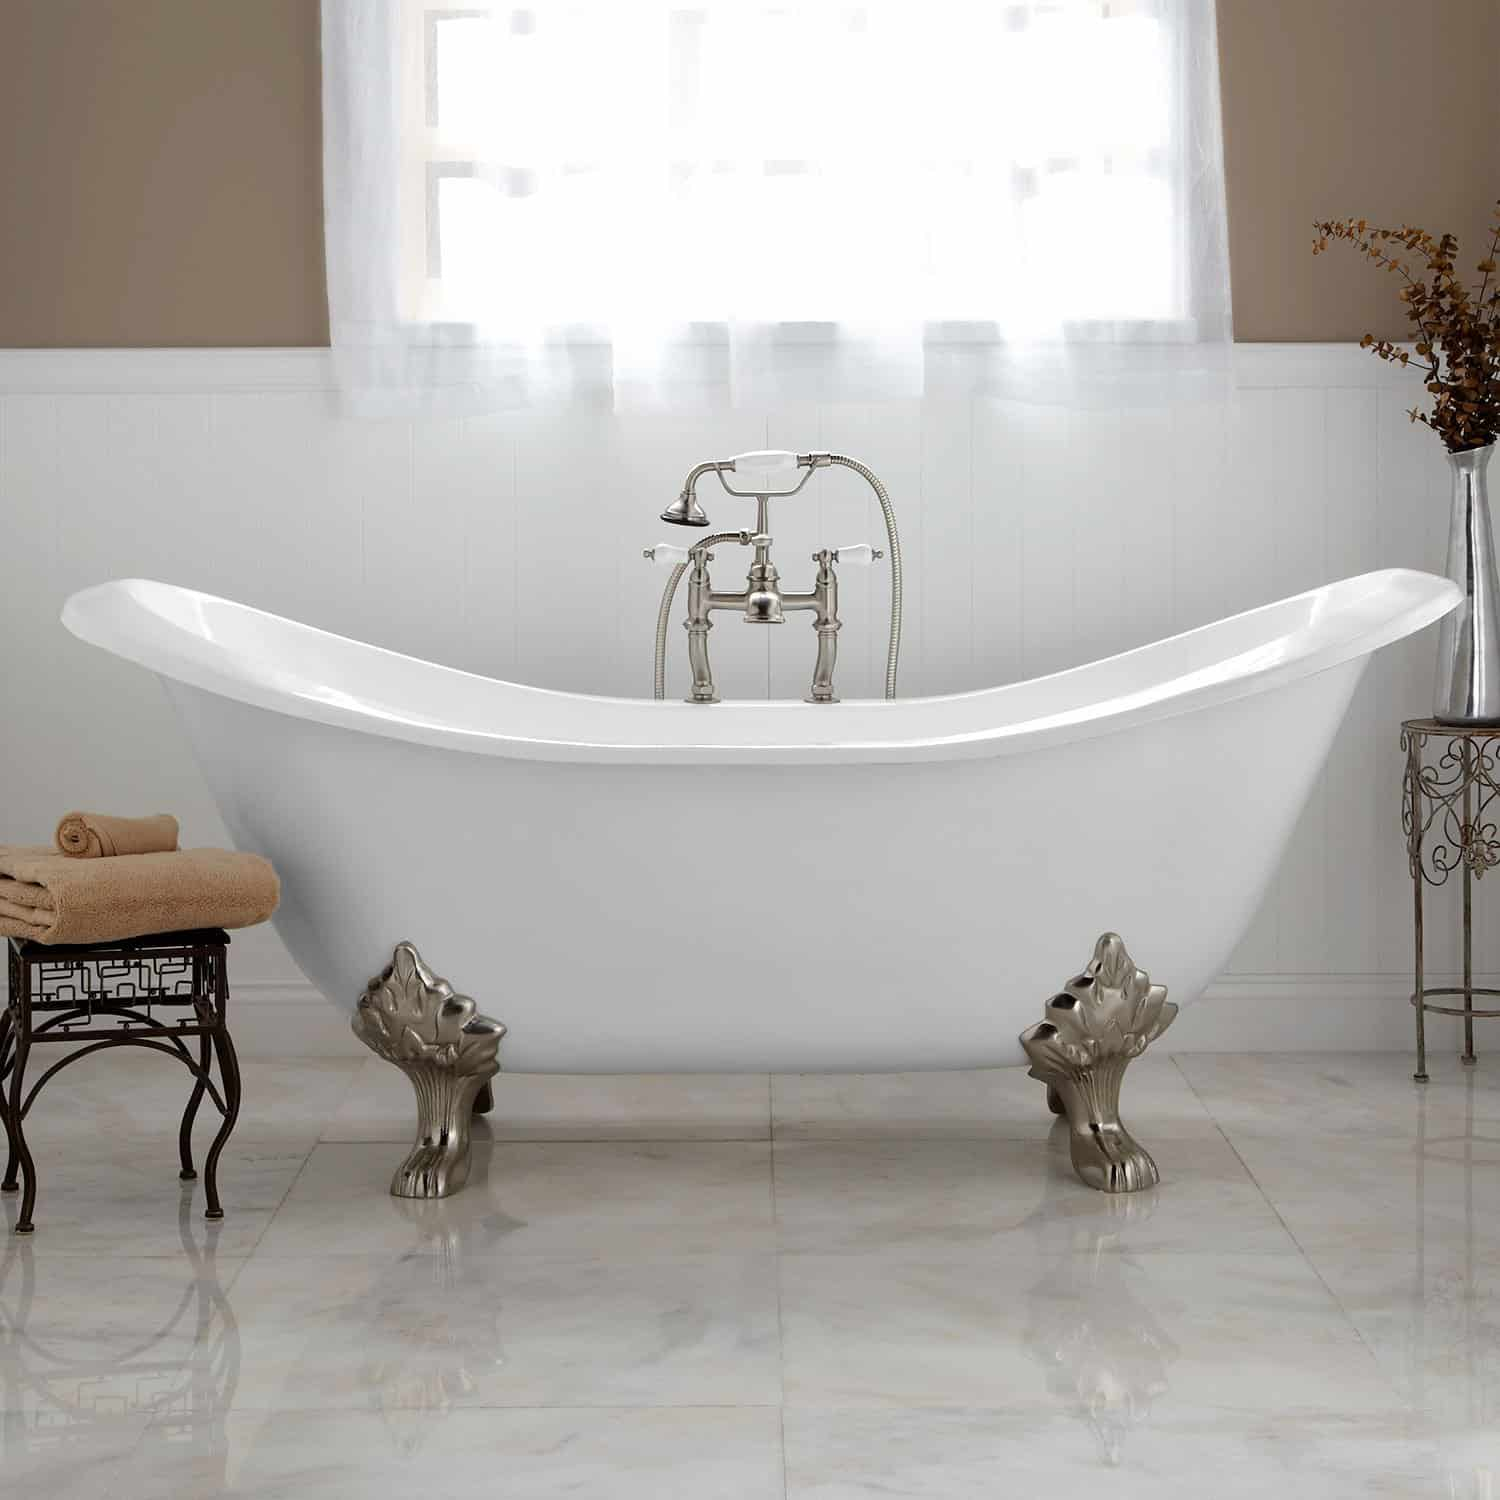 Generous How To Paint A Bathtub Small Paint For Bathtub Square Bath Tub Paint Paint Tub Youthful Paint A Bathtub Dark Bathtub Repair Contractor